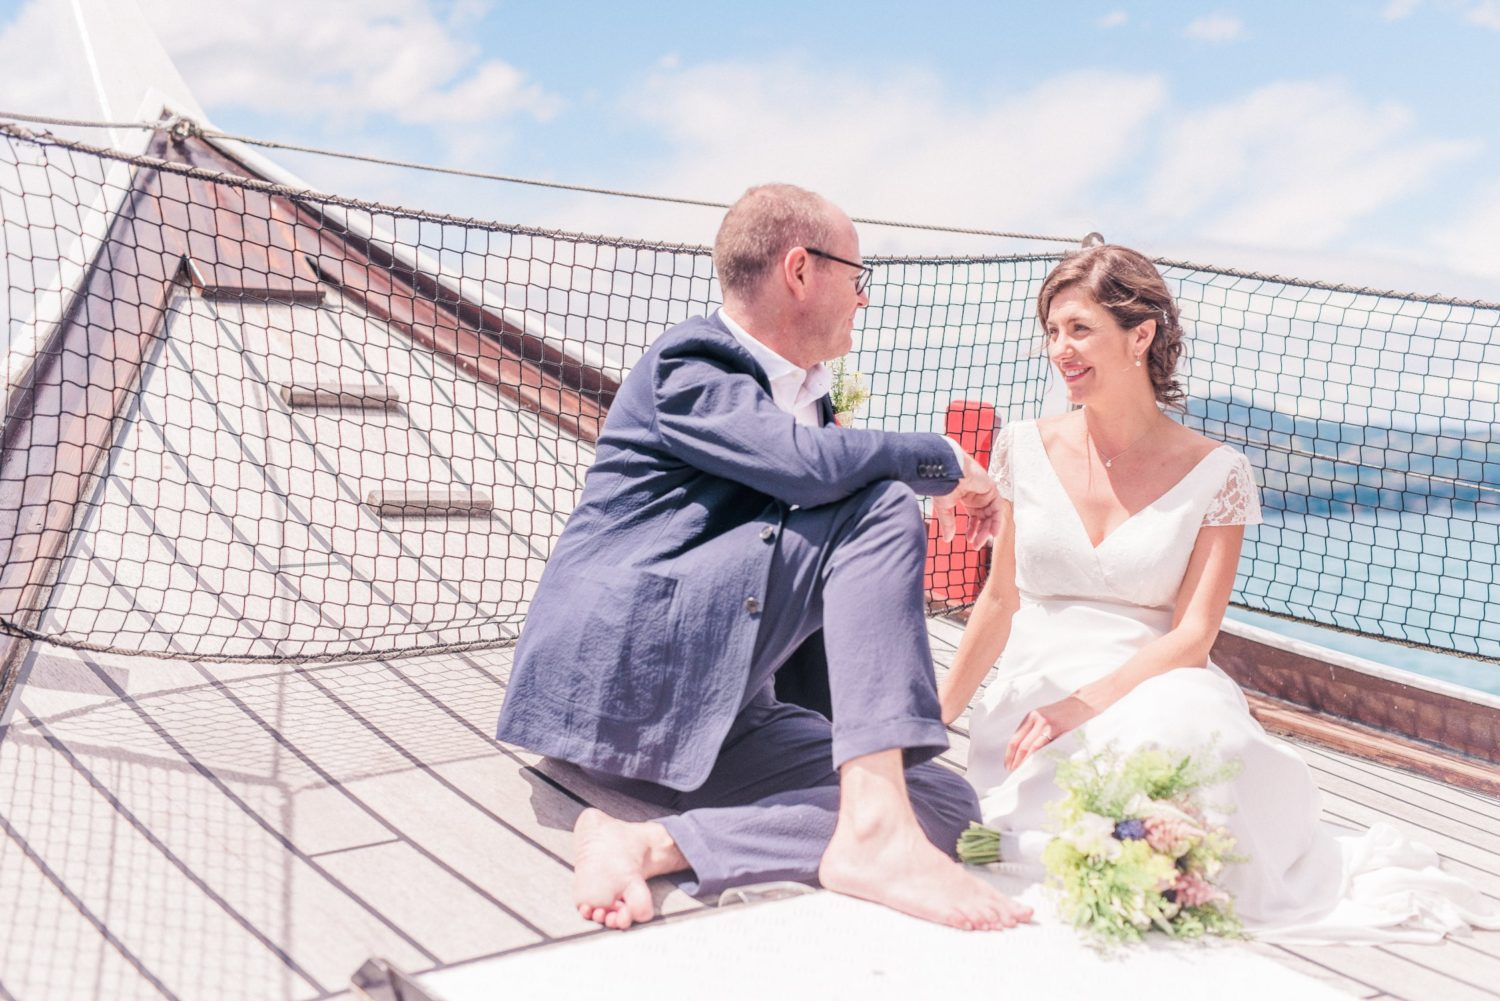 Barefoot couple during their wedding on a boat